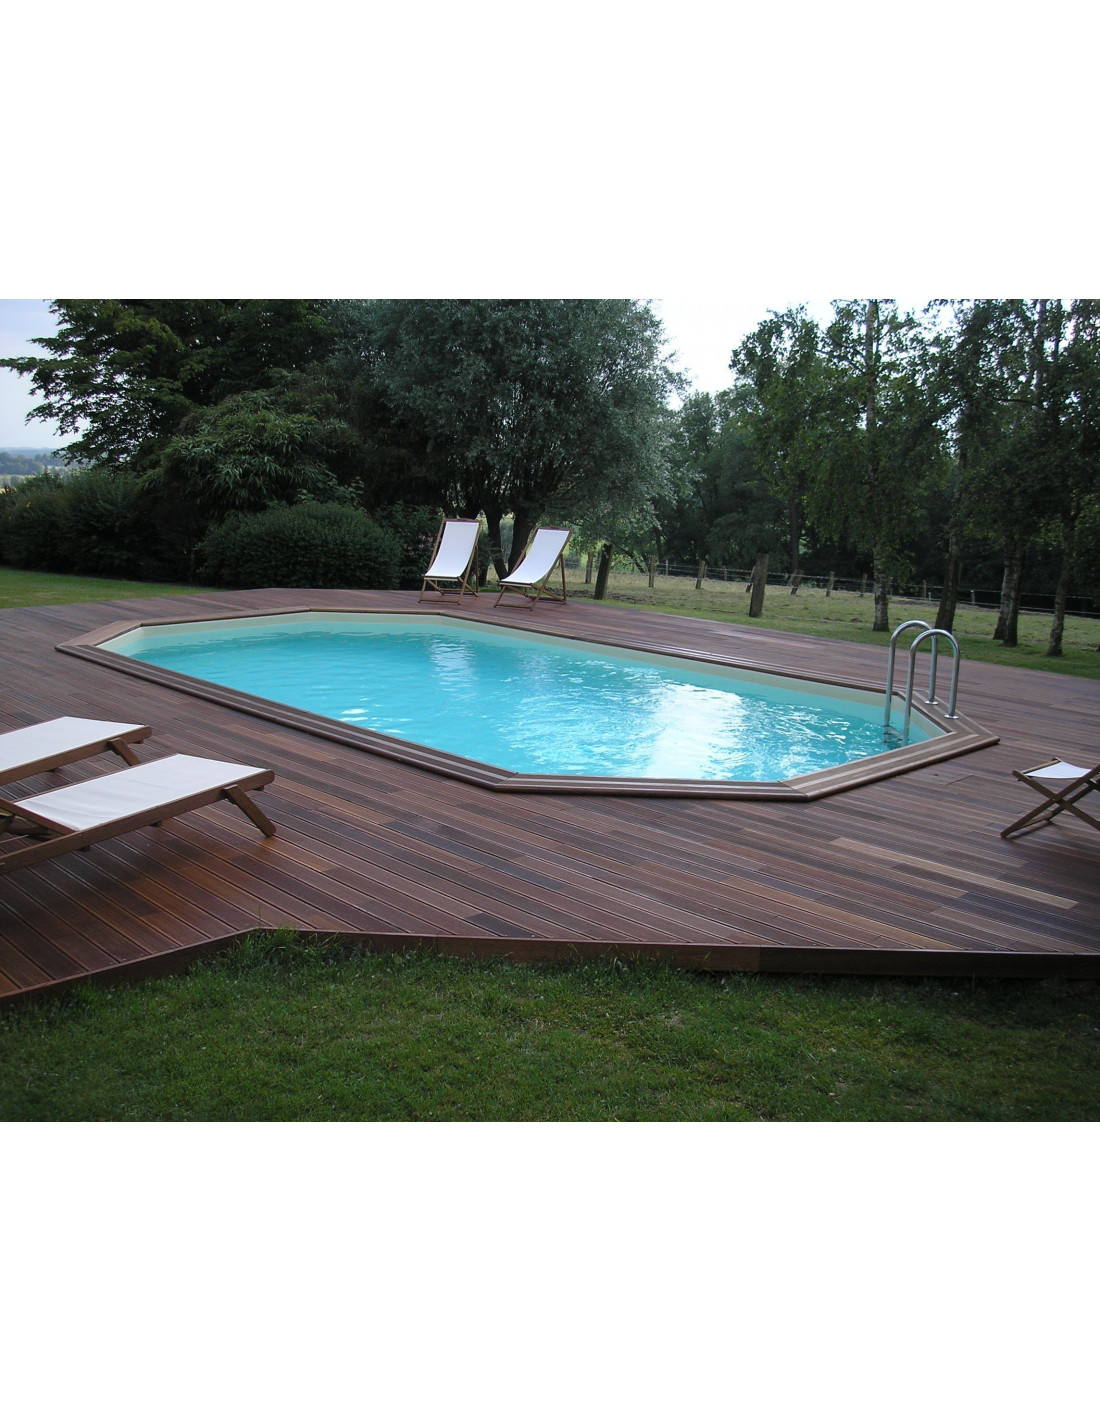 D co piscine gonflable rectangulaire avec pompe for Piscine gonflable rectangulaire